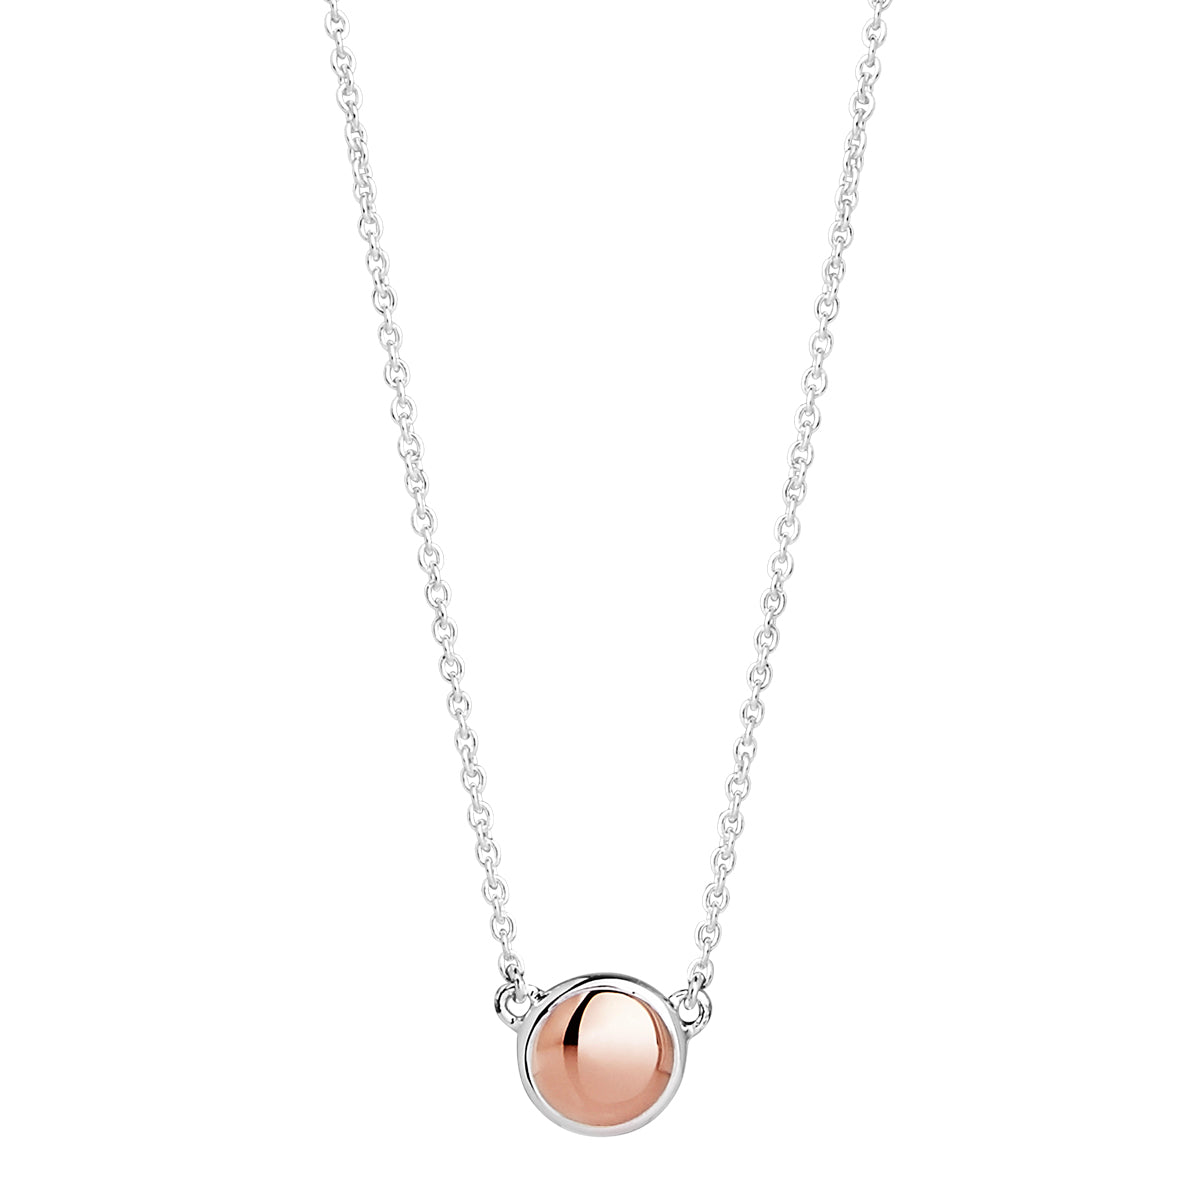 Rosy Glimmer Necklace